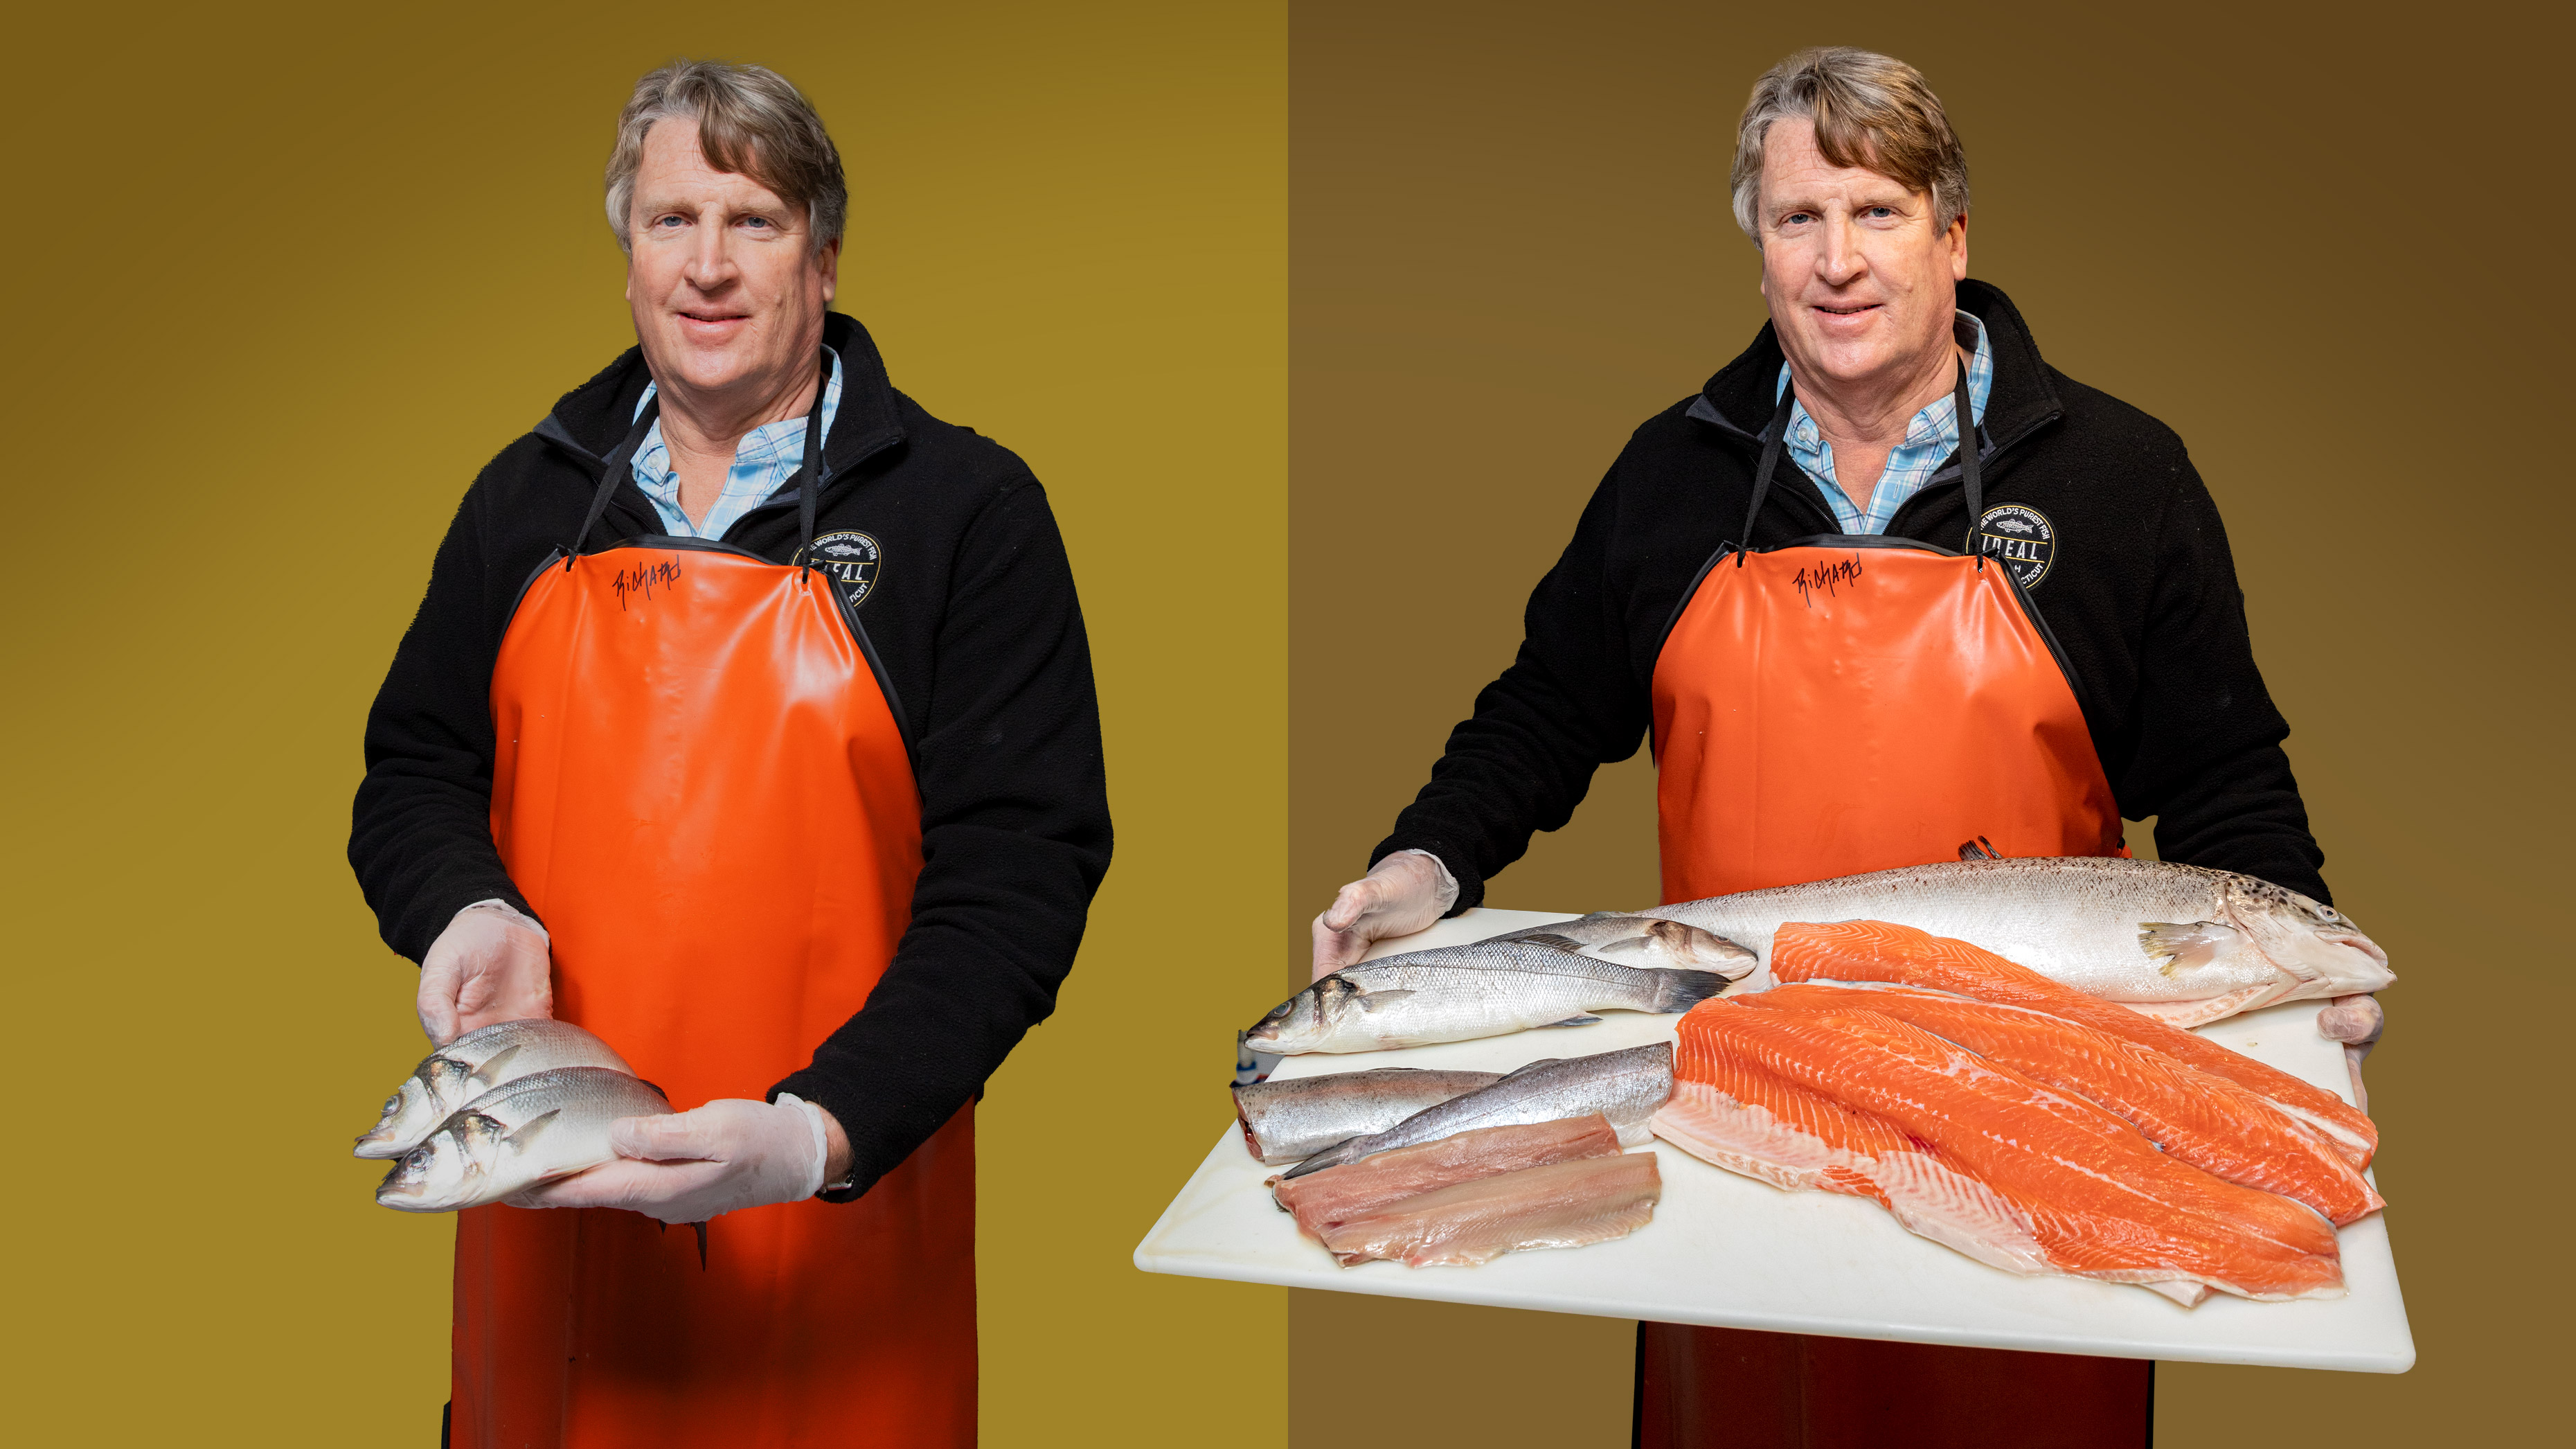 Two images of Ideal Fish CEO Eric Pedersen holding fillets of branzino fish